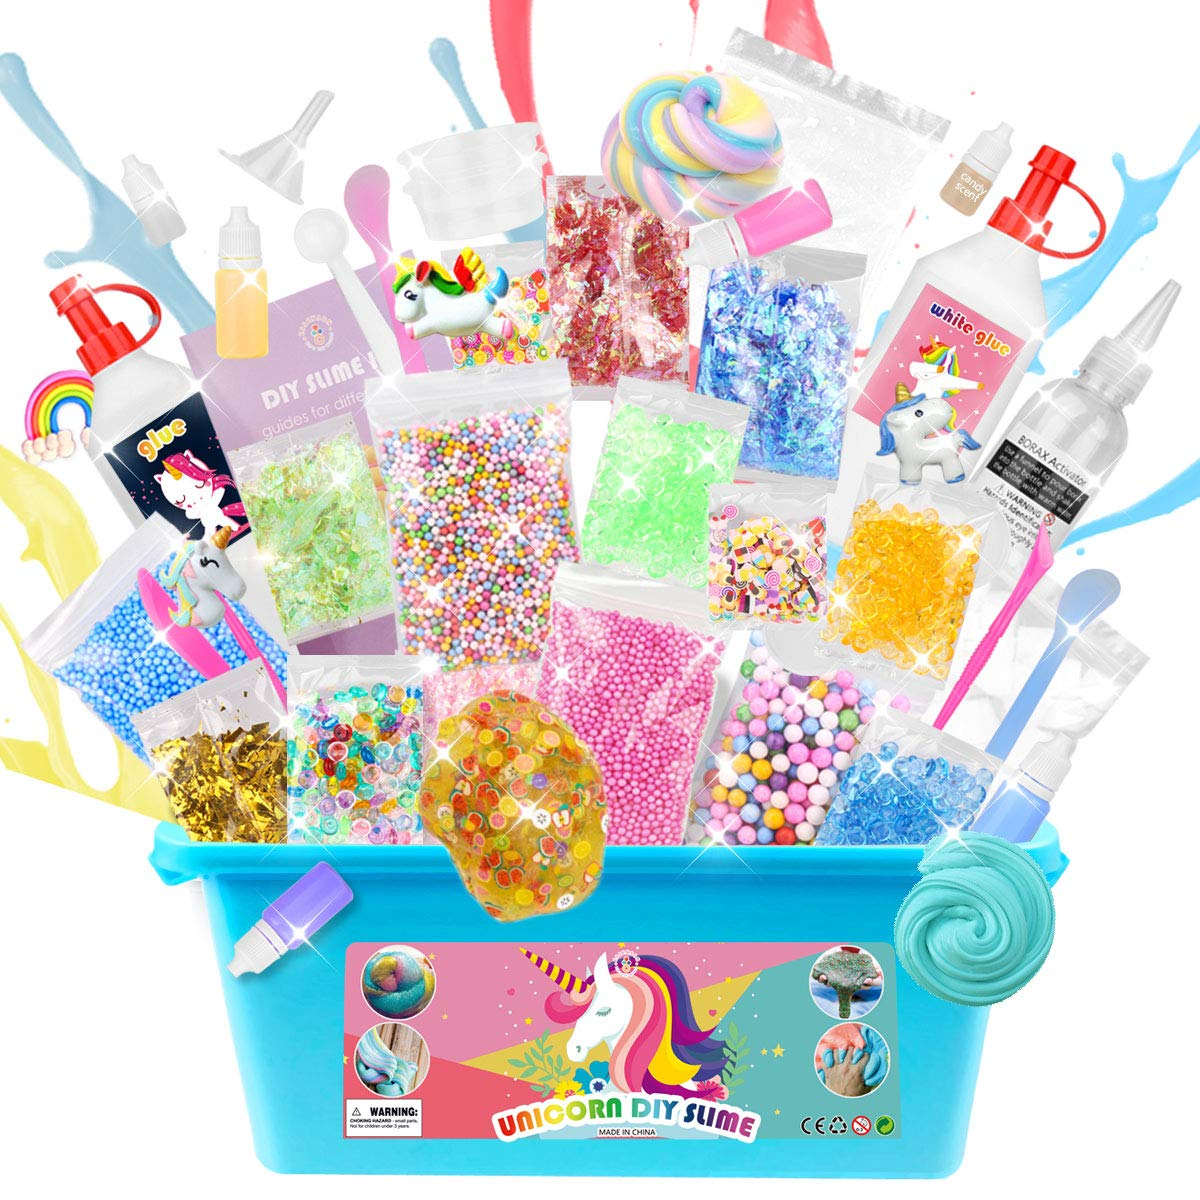 ESSENSON DIY Unicorn Slime Kit for Girls Boys - 2 in 1 Slime Supplies [53 Pieces Set in One Box] Make Your Own Clear Slime, Cloud, Glitter and Foam Slime Age 6+ Year Old Girl Gifts Kids Art Craft